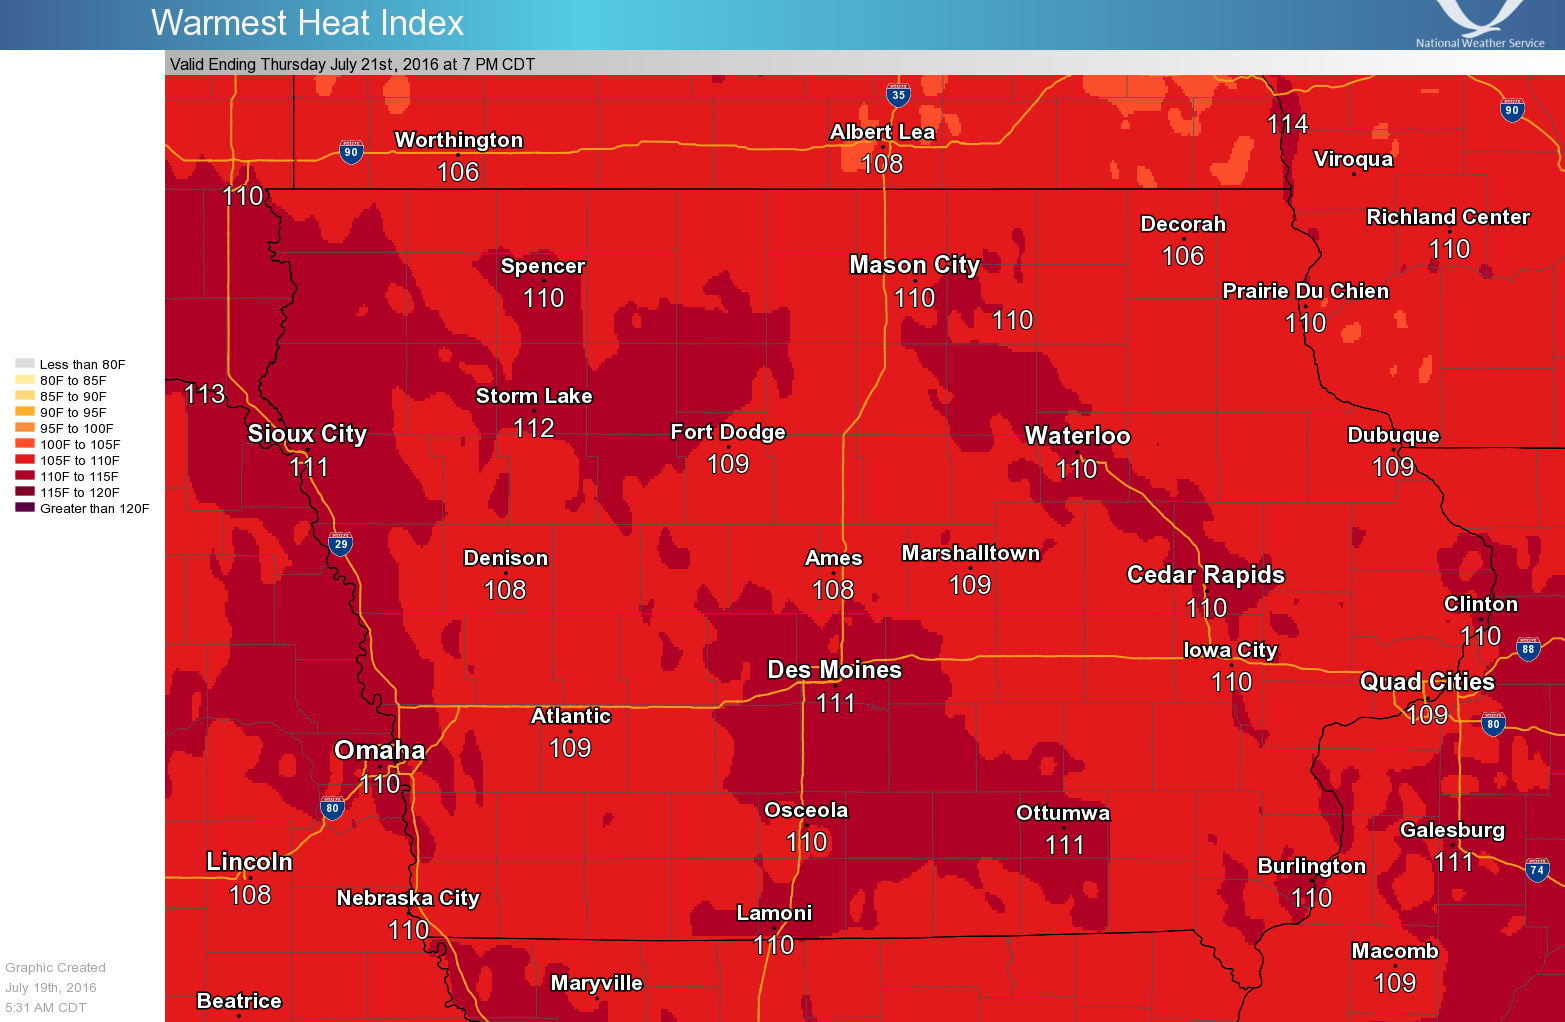 Heat index values on July 21, 2016.